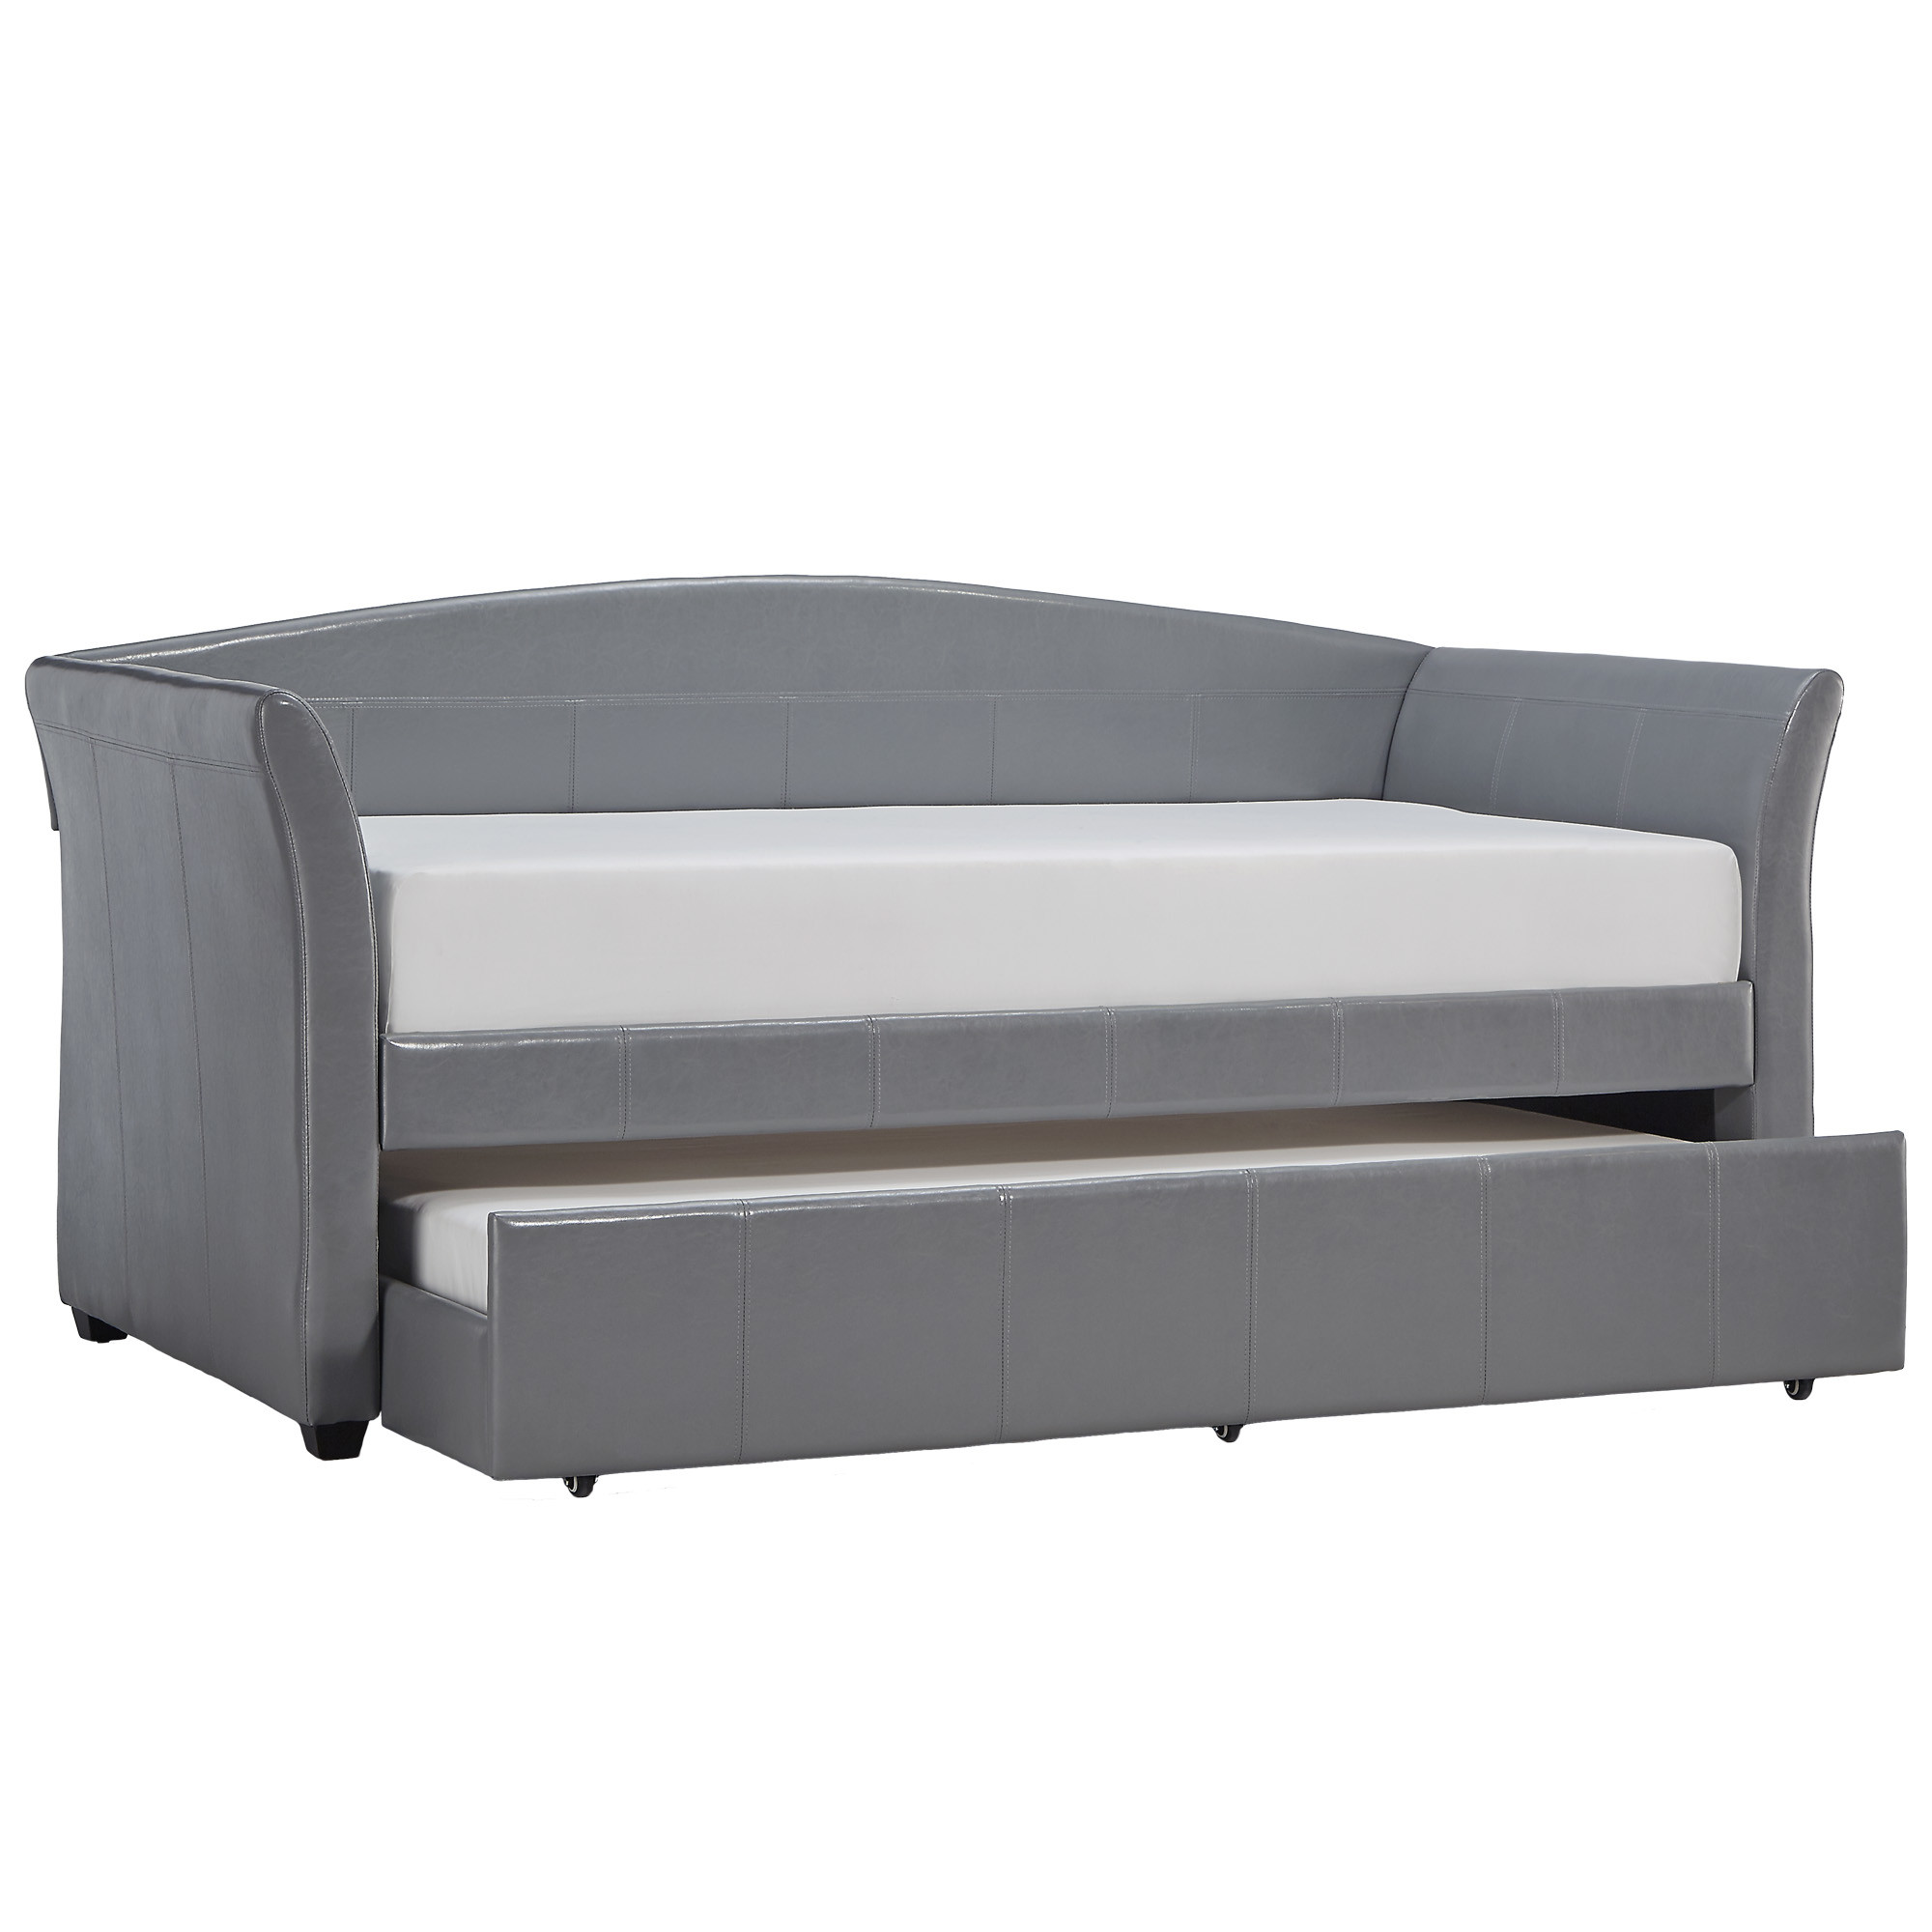 Inspiring daybed with storage for small bedroom design with full size daybed with storage